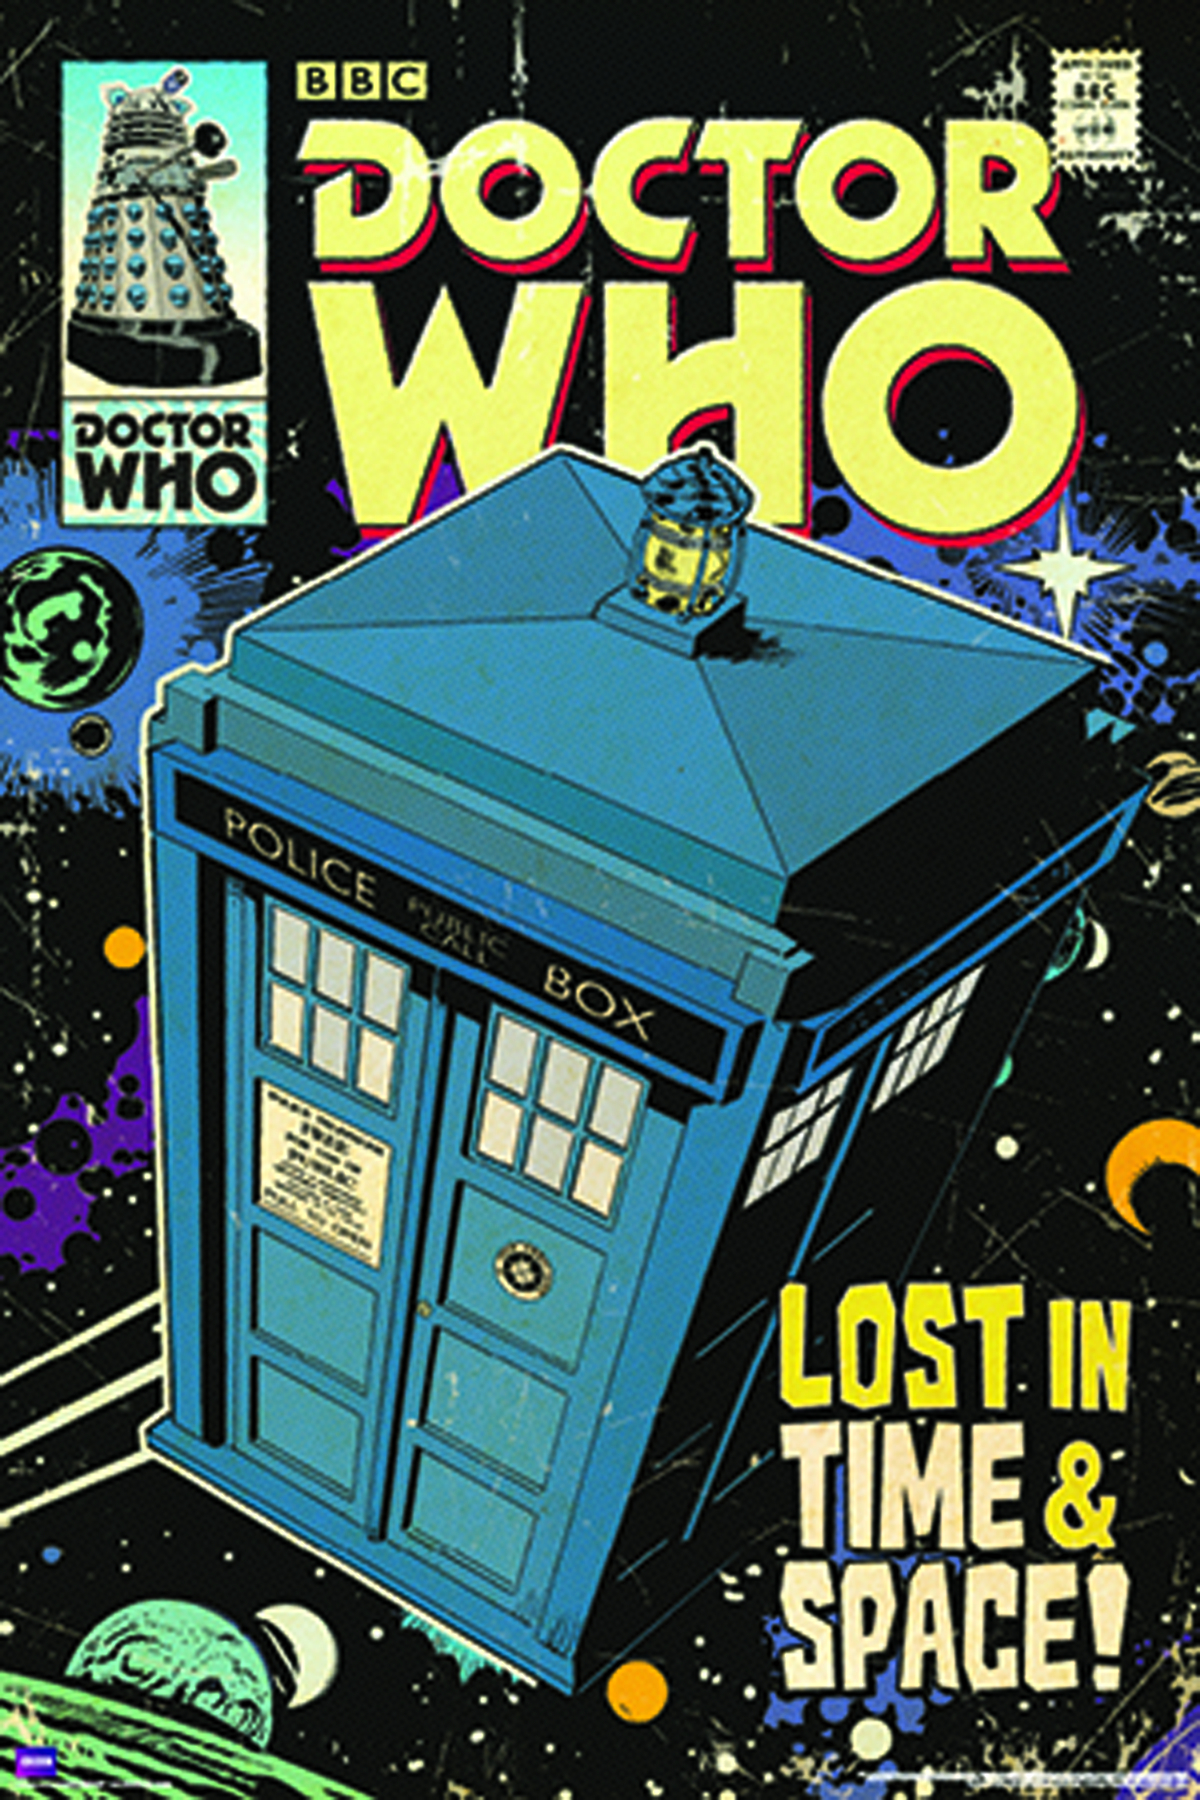 DOCTOR WHO TARDIS COMIC ART SLIM PRINT ROLLED POSTER